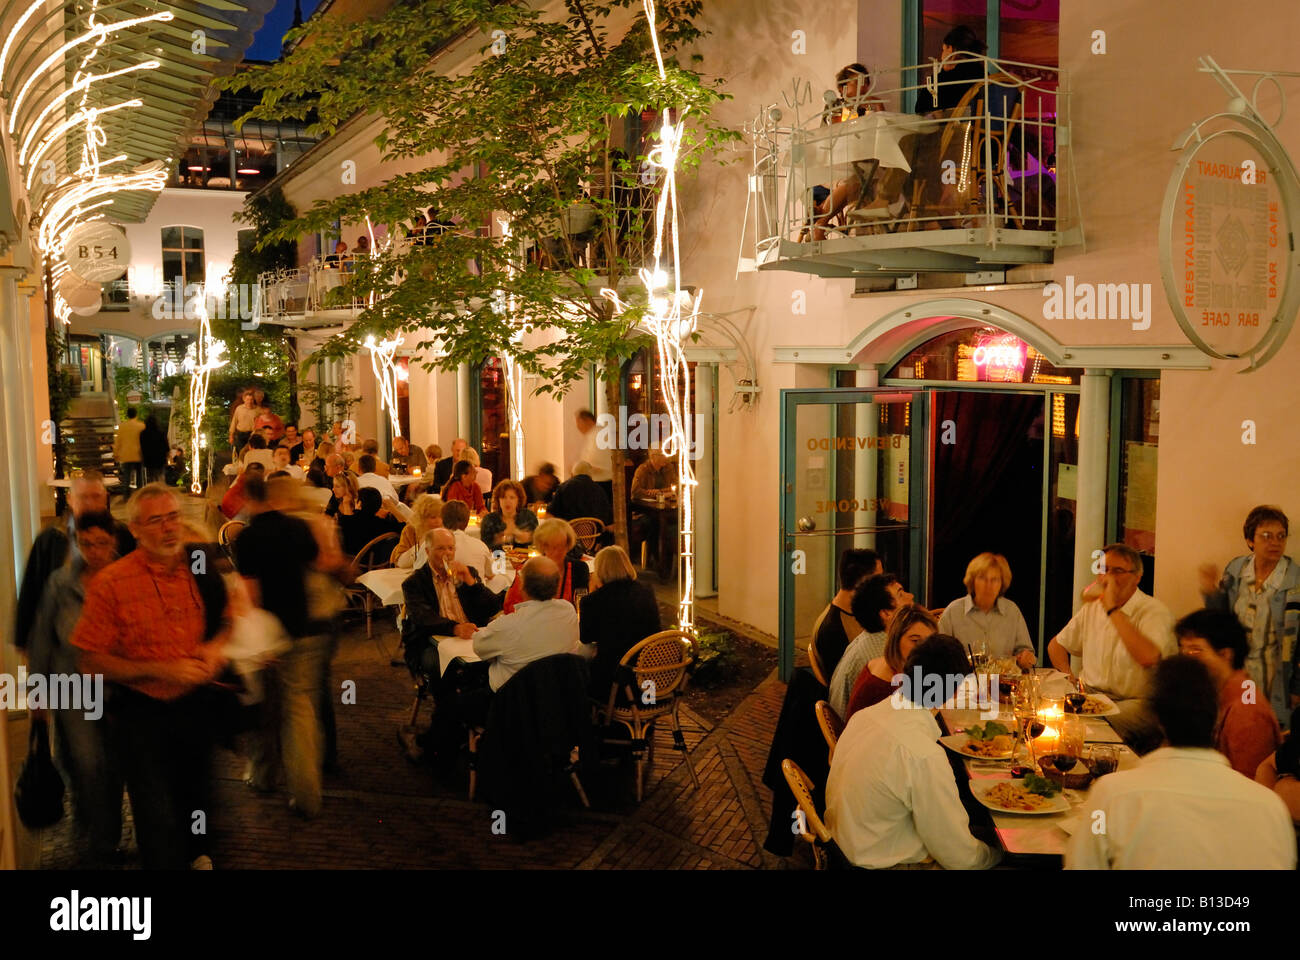 berlin rosenhoefe rosenthaler strasse berlin mitte restaurant stock photo 17901193 alamy. Black Bedroom Furniture Sets. Home Design Ideas